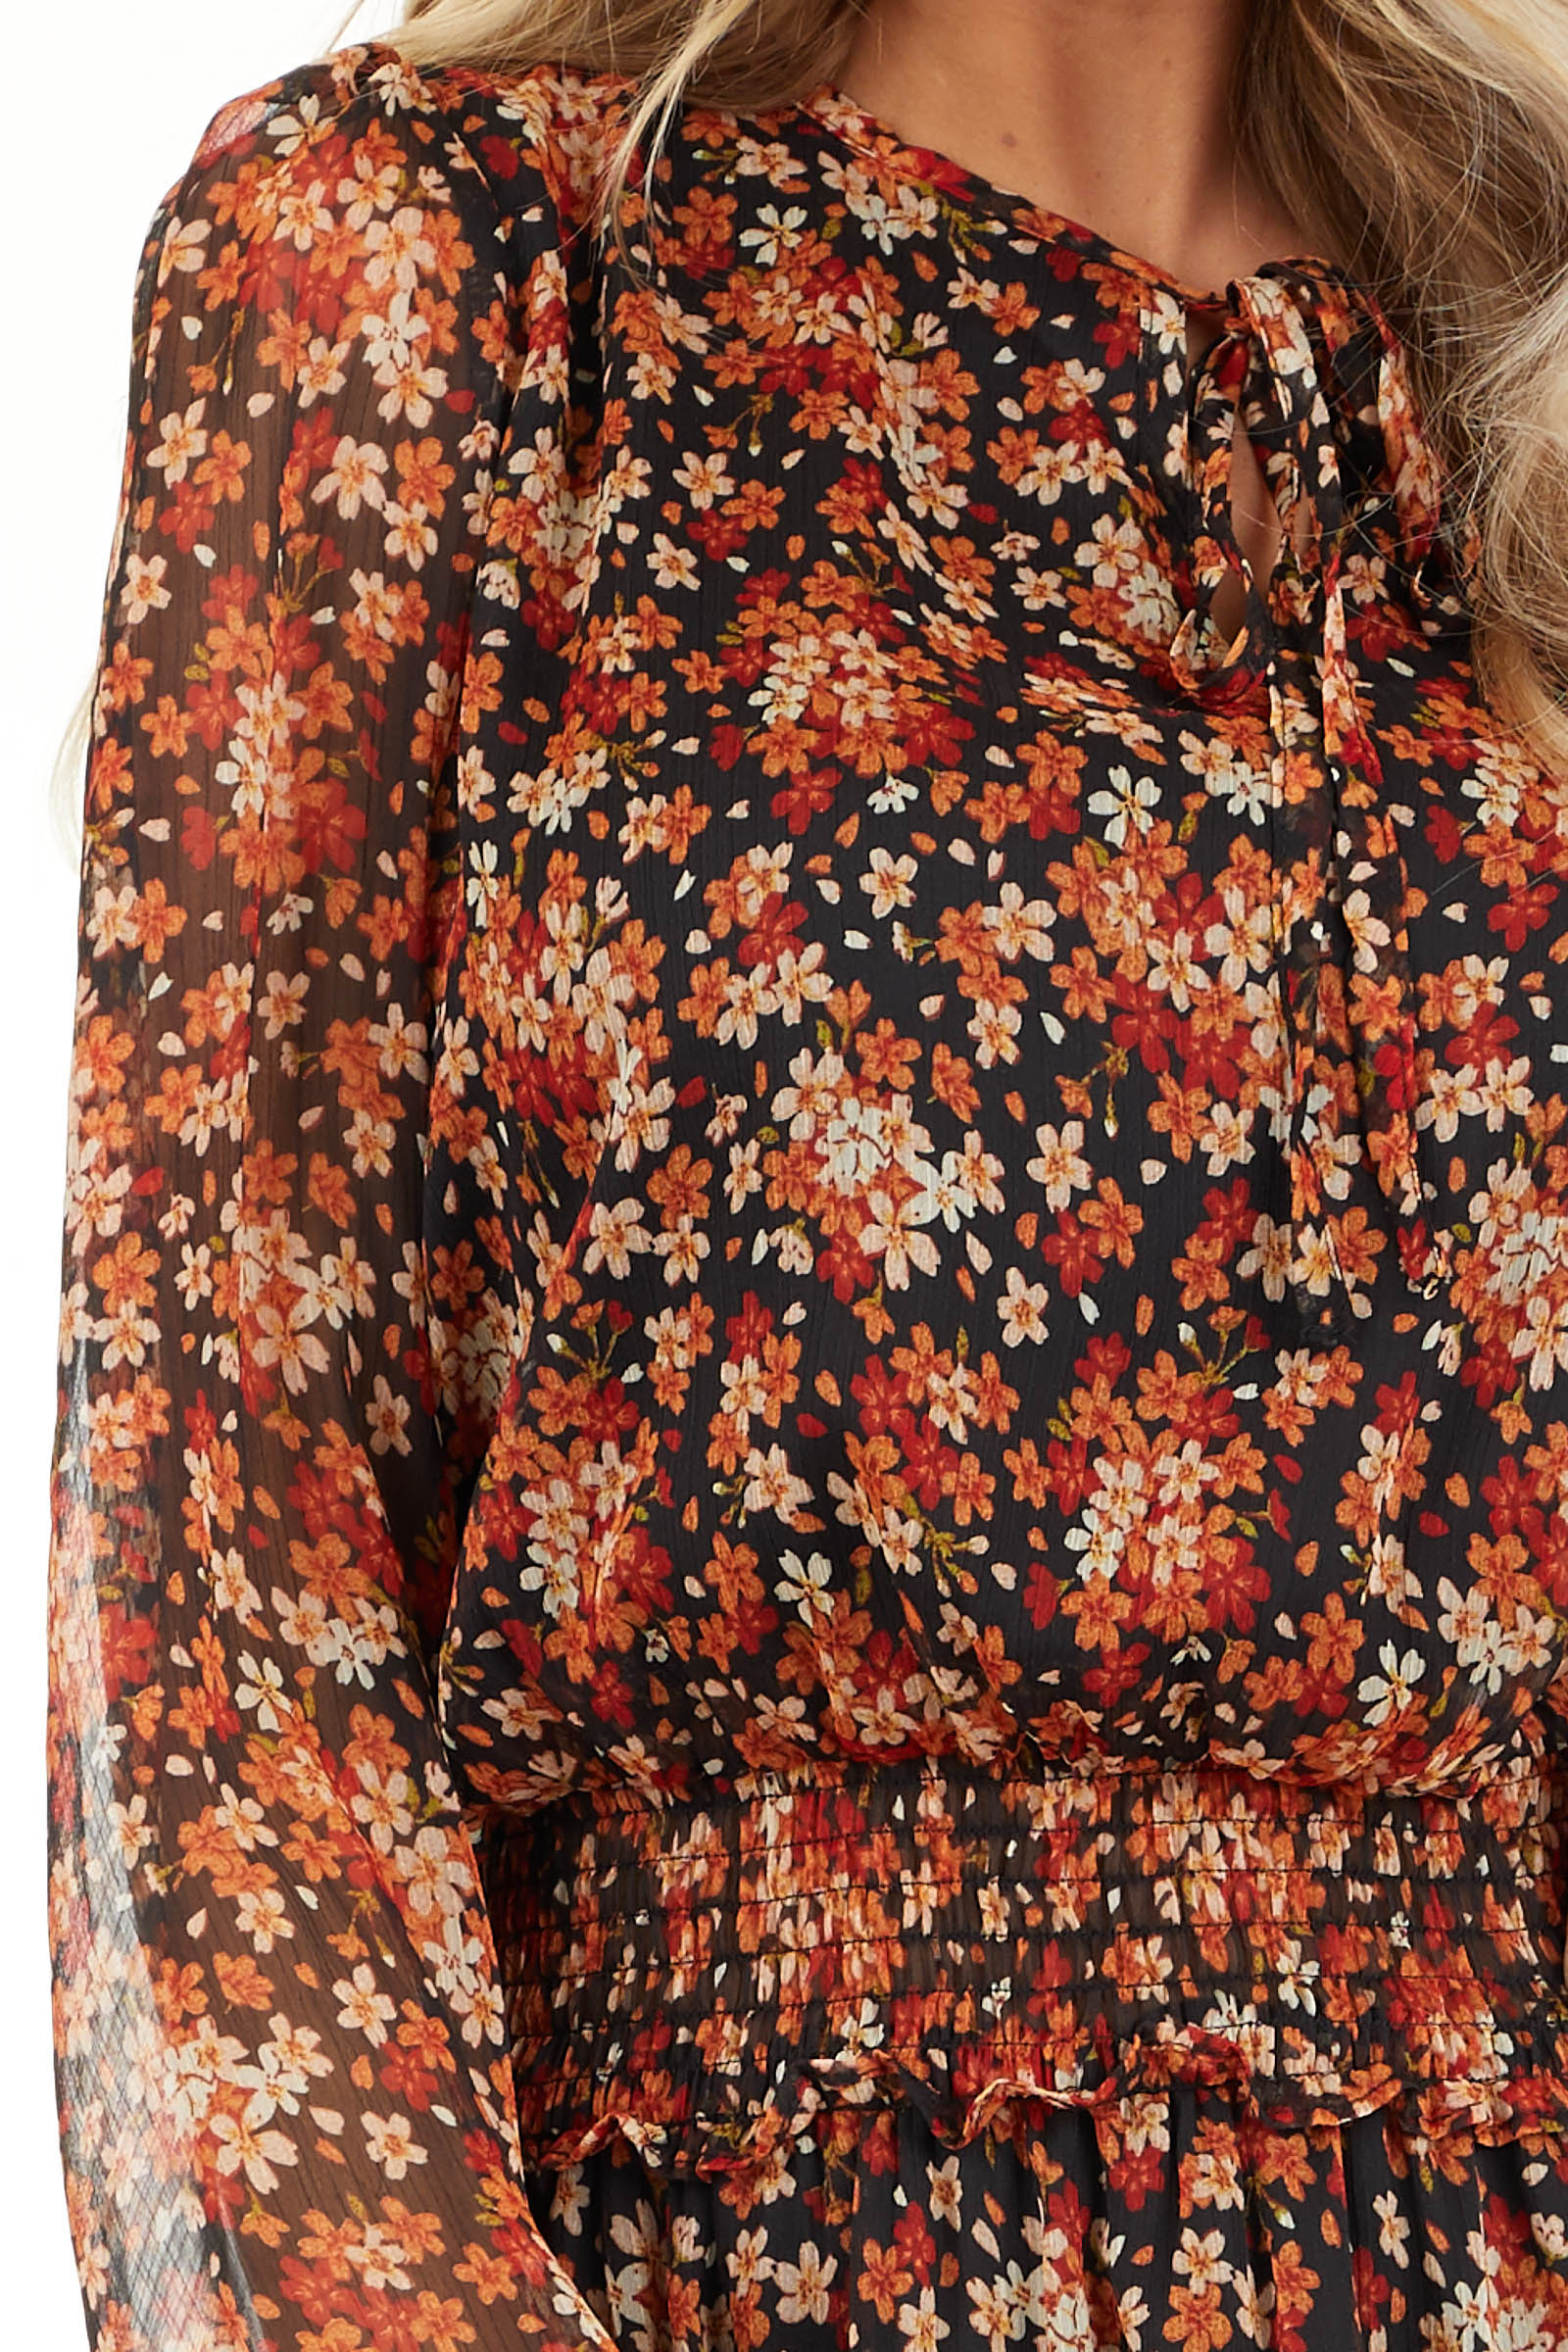 Tawny and Black Floral Print Dress with Smocked Waist detail